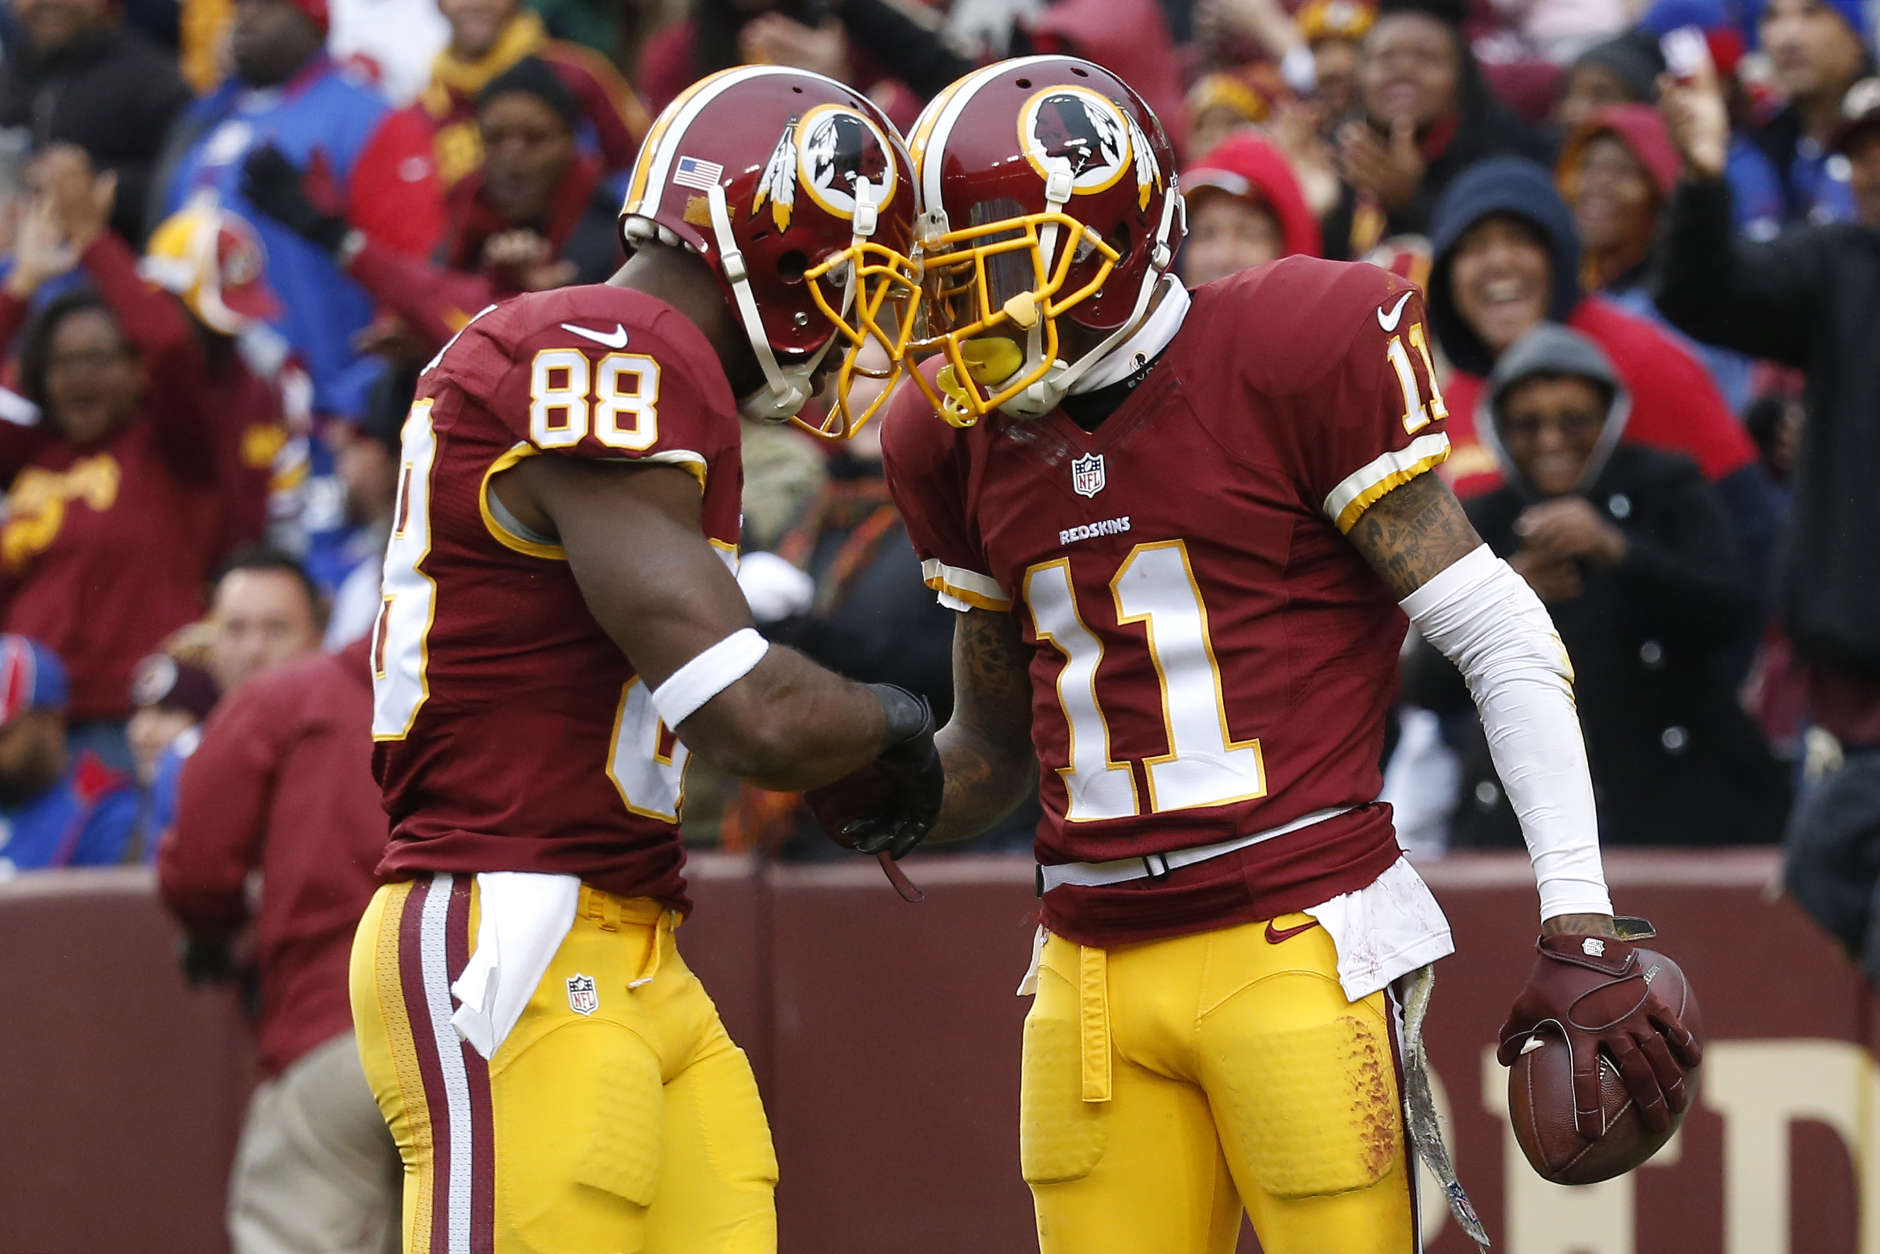 LANDOVER, MD - NOVEMBER 29: Wide receiver DeSean Jackson #11 of the Washington Redskins celebrates with wide receiver Pierre Garcon #88 of the Washington Redskins after scoring a second quarter touchdown against the New York Giants at FedExField on November 29, 2015 in Landover, Maryland. (Photo by Rob Carr/Getty Images)